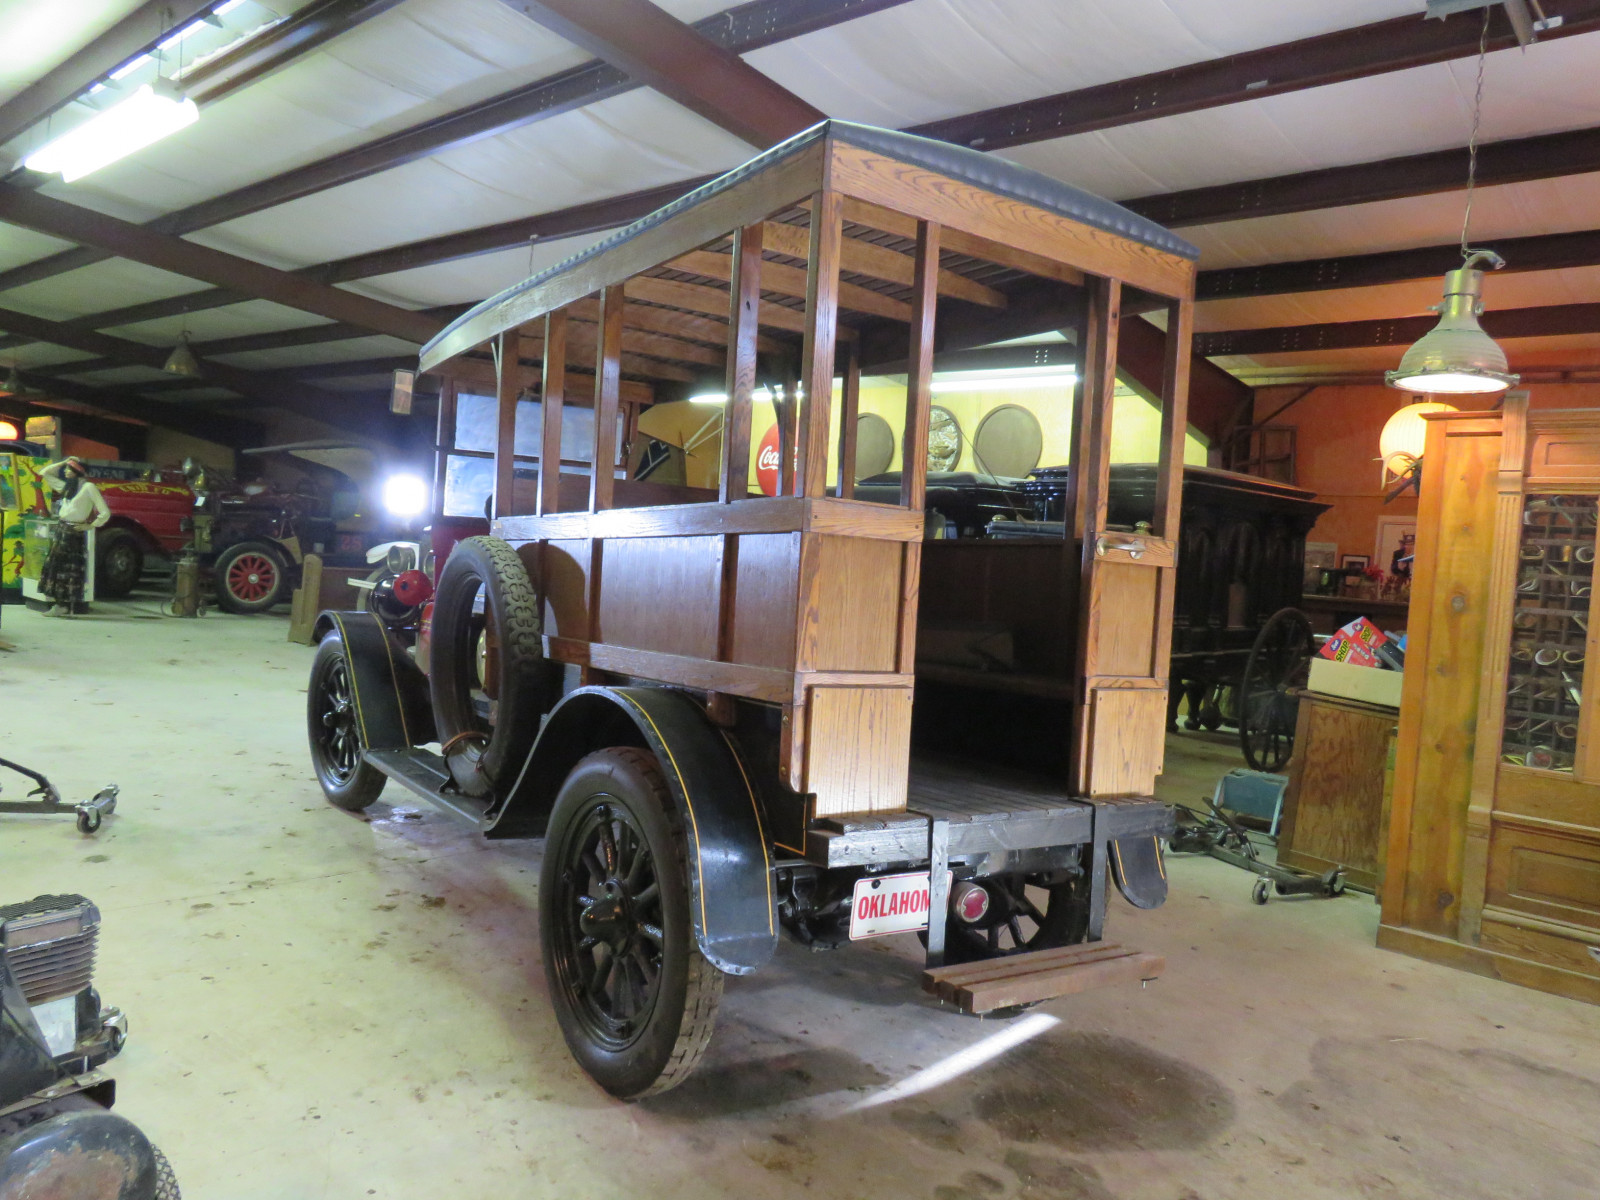 Rare 1920 REO Speedwagon Canopy Express Truck - Image 10